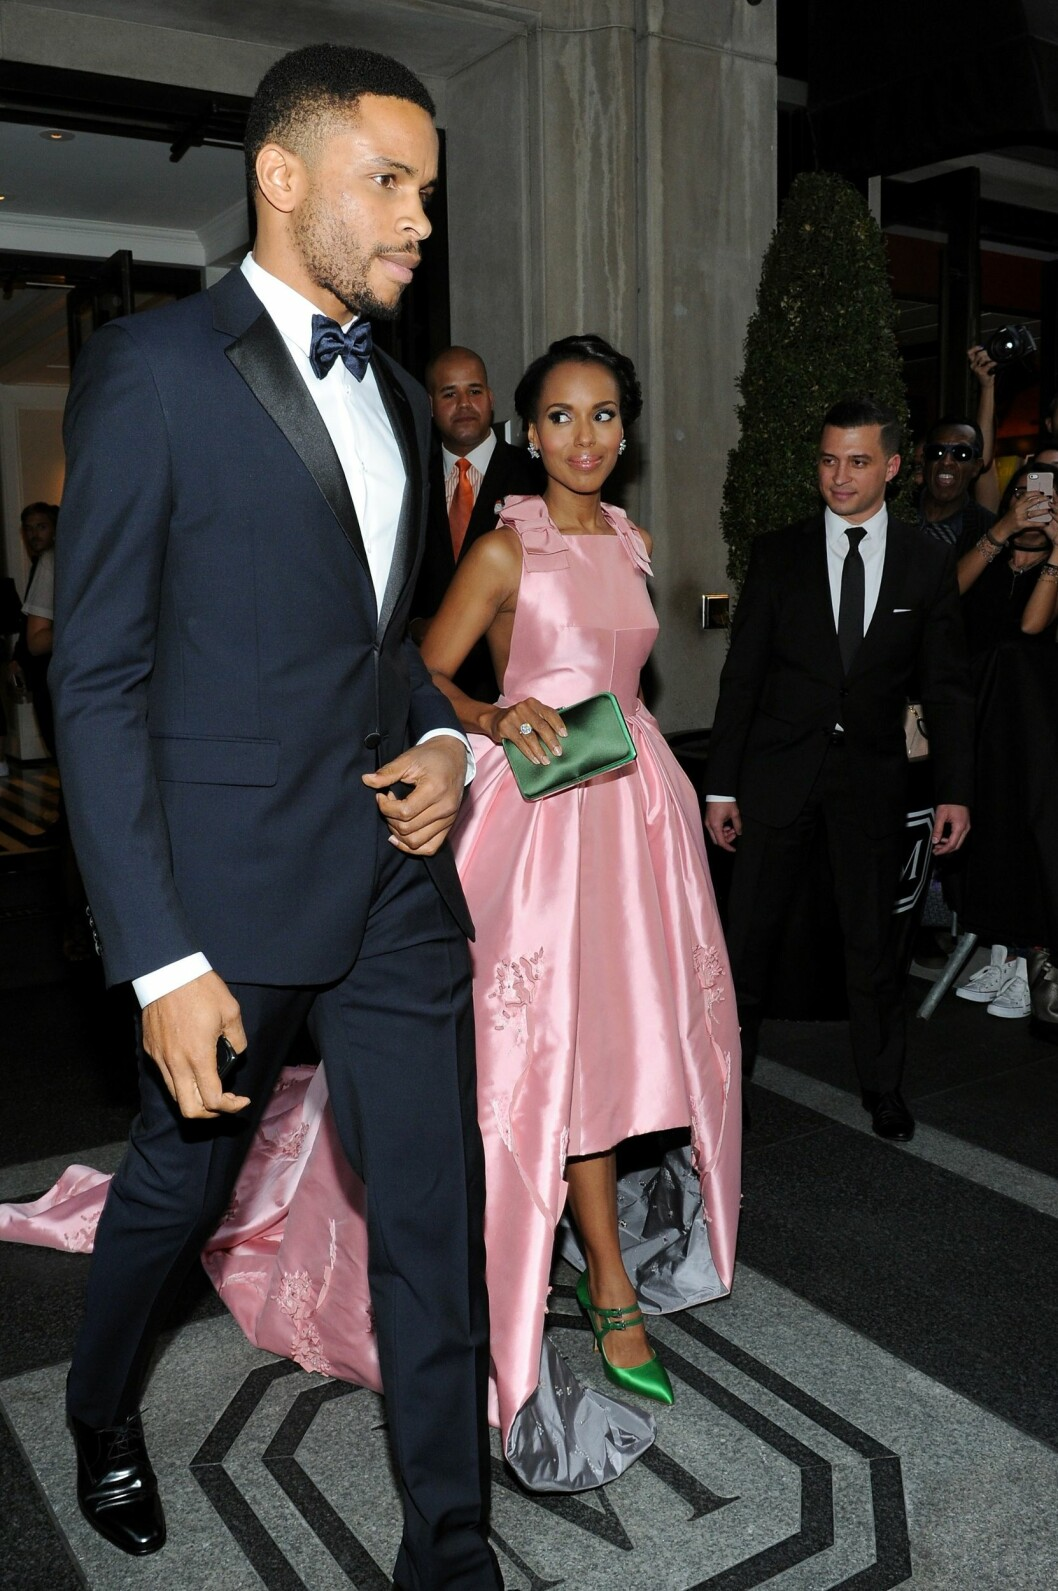 SVÆRT PRIVATE: Her haster Kerry Washington og ektemannen forbi fotografene under Met Galaen i New York i mai i fjor.  Foto: Afp